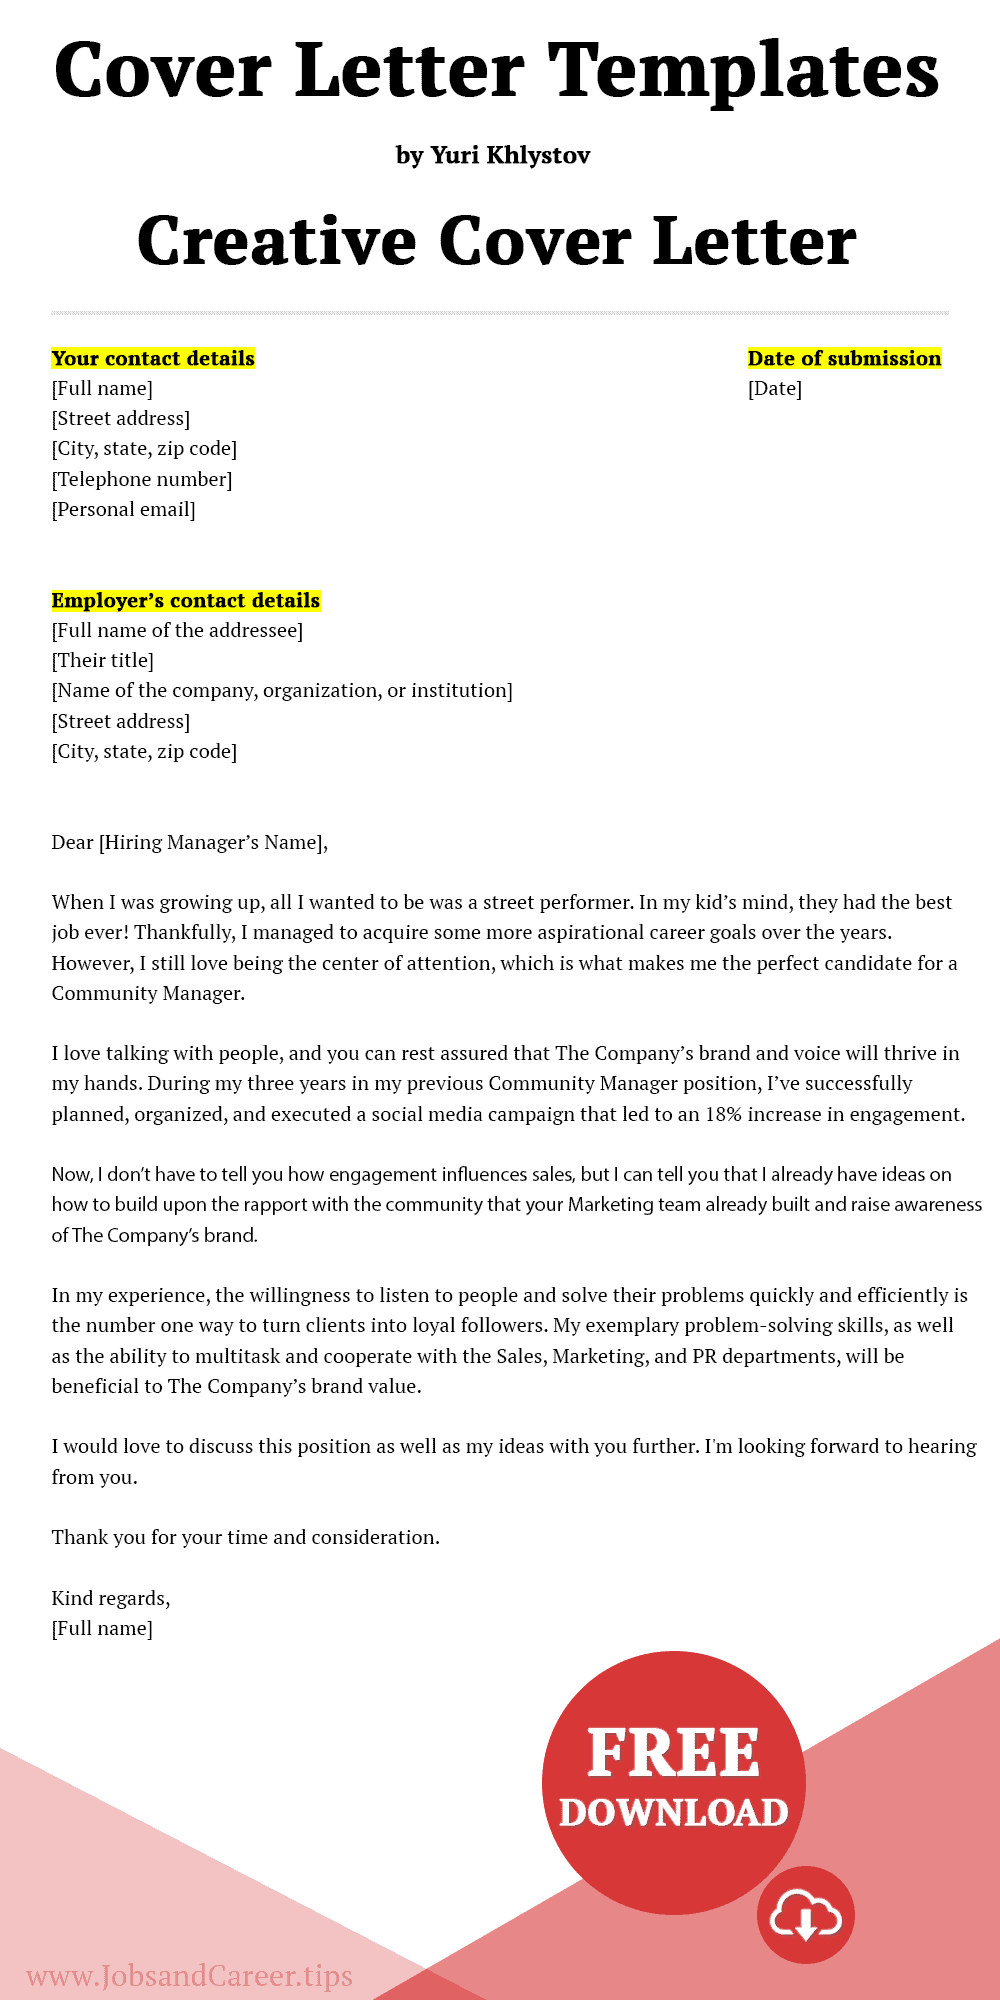 Click to download the creative cover letter template